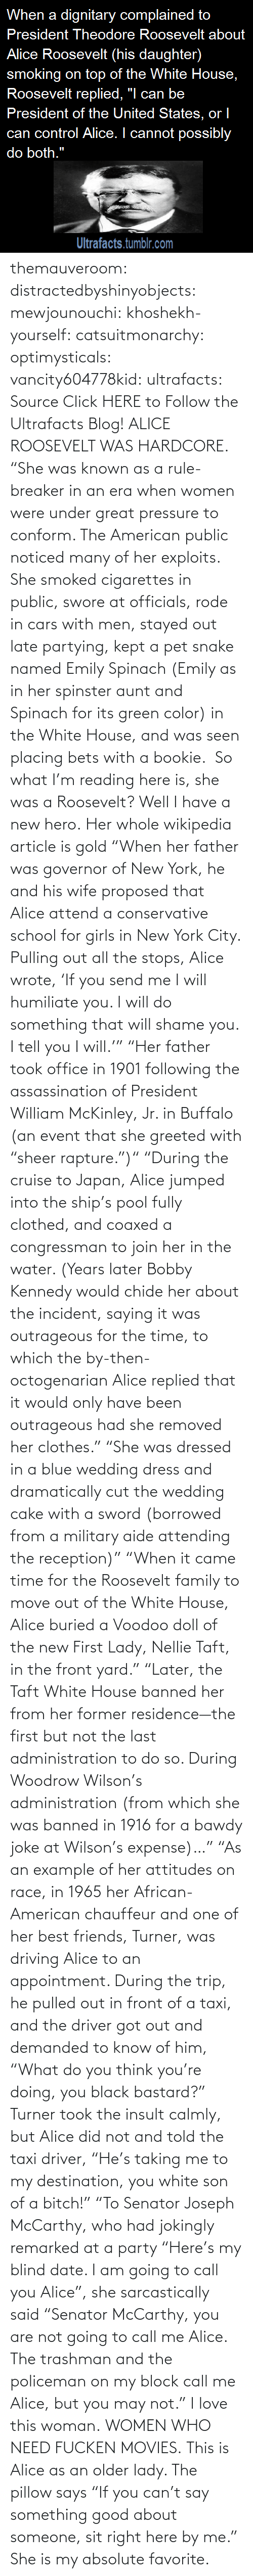 "following: themauveroom: distractedbyshinyobjects:  mewjounouchi:  khoshekh-yourself:  catsuitmonarchy:  optimysticals:  vancity604778kid:  ultrafacts:     Source Click HERE to Follow the Ultrafacts Blog!     ALICE ROOSEVELT WAS HARDCORE. ""She was known as a rule-breaker in an era when women were under great pressure to conform. The American public noticed many of her exploits. She smoked cigarettes in public, swore at officials, rode in cars with men, stayed out late partying, kept a pet snake named Emily Spinach (Emily as in her spinster aunt and Spinach for its green color) in the White House, and was seen placing bets with a bookie.    So what I'm reading here is, she was a Roosevelt?  Well I have a new hero.  Her whole wikipedia article is gold ""When her father was governor of New York, he and his wife proposed that Alice attend a conservative school for girls in New York City. Pulling out all the stops, Alice wrote, 'If you send me I will humiliate you. I will do something that will shame you. I tell you I will.'"" ""Her father took office in 1901 following the assassination of President William McKinley, Jr. in Buffalo (an event that she greeted with ""sheer rapture."")"" ""During the cruise to Japan, Alice jumped into the ship's pool fully clothed, and coaxed a congressman to join her in the water. (Years later Bobby Kennedy would chide her about the incident, saying it was outrageous for the time, to which the by-then-octogenarian Alice replied that it would only have been outrageous had she removed her clothes."" ""She was dressed in a blue wedding dress and dramatically cut the wedding cake with a sword (borrowed from a military aide attending the reception)"" ""When it came time for the Roosevelt family to move out of the White House, Alice buried a Voodoo doll of the new First Lady, Nellie Taft, in the front yard."" ""Later, the Taft White House banned her from her former residence—the first but not the last administration to do so. During Woodrow Wilson's administration (from which she was banned in 1916 for a bawdy joke at Wilson's expense)…"" ""As an example of her attitudes on race, in 1965 her African-American chauffeur and one of her best friends, Turner, was driving Alice to an appointment. During the trip, he pulled out in front of a taxi, and the driver got out and demanded to know of him, ""What do you think you're doing, you black bastard?"" Turner took the insult calmly, but Alice did not and told the taxi driver, ""He's taking me to my destination, you white son of a bitch!"" ""To Senator Joseph McCarthy, who had jokingly remarked at a party ""Here's my blind date. I am going to call you Alice"", she sarcastically said ""Senator McCarthy, you are not going to call me Alice. The trashman and the policeman on my block call me Alice, but you may not.""  I love this woman.  WOMEN WHO NEED FUCKEN MOVIES.   This is Alice as an older lady. The pillow says ""If you can't say something good about someone, sit right here by me.""  She is my absolute favorite."